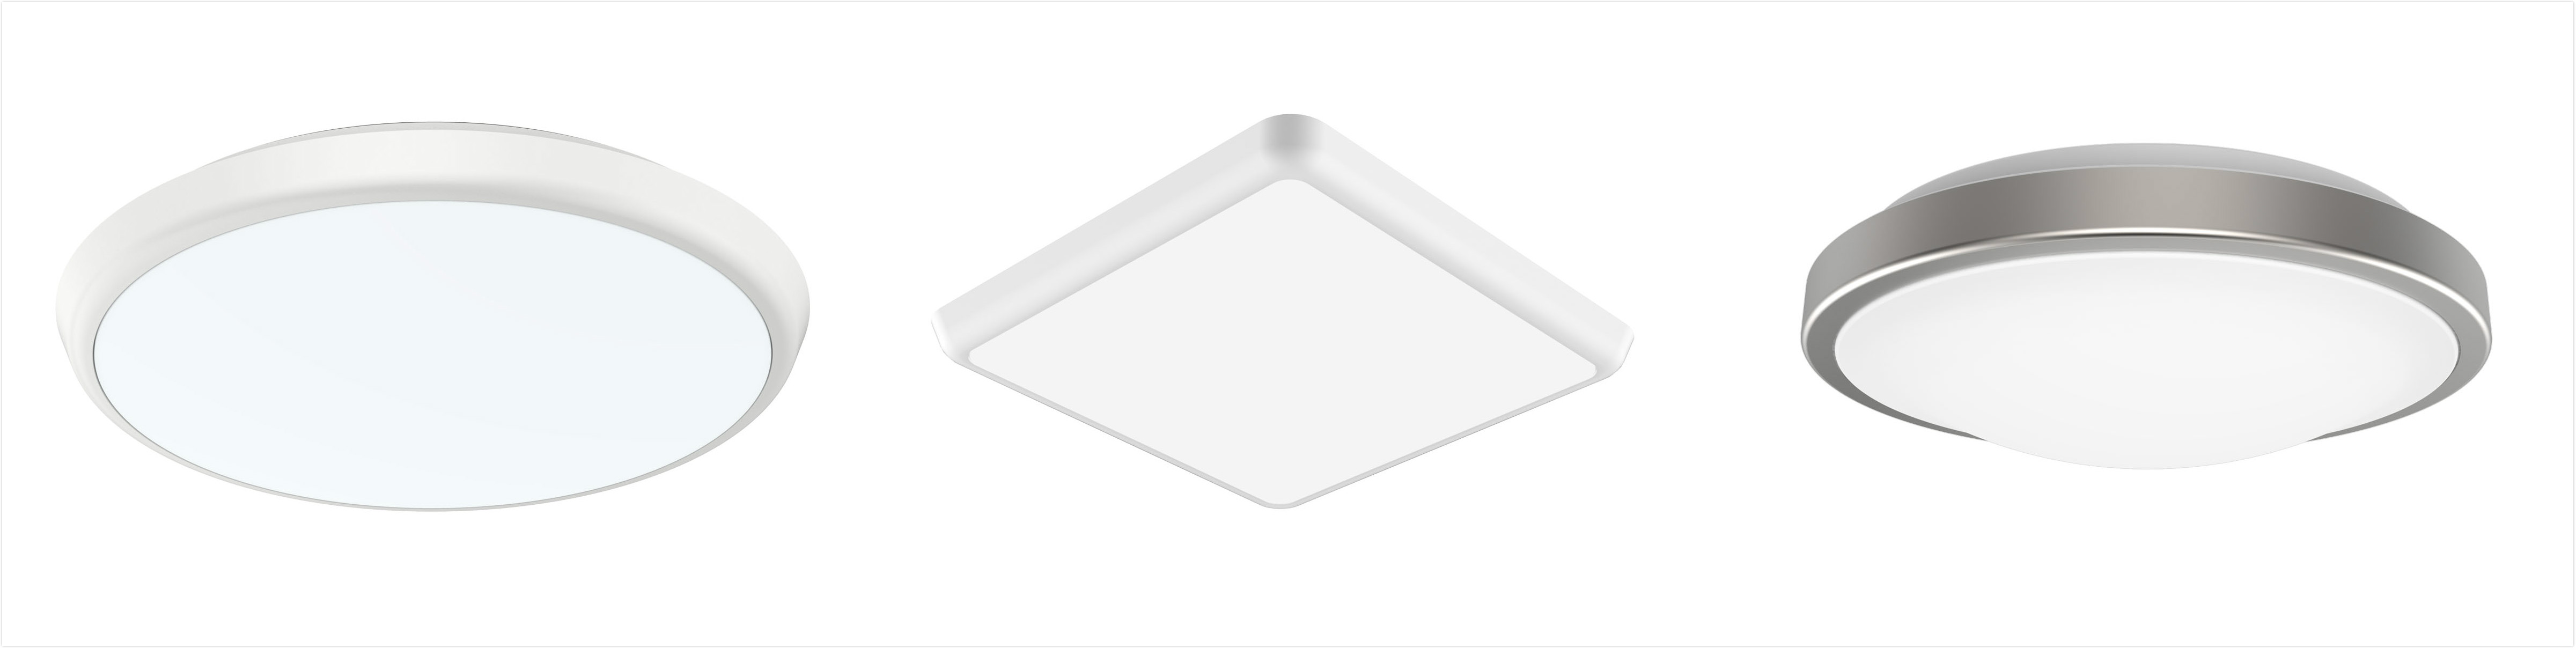 location l is this light auction square cover enertron flourescent fixture for damp ceilings compact itm ceiling a